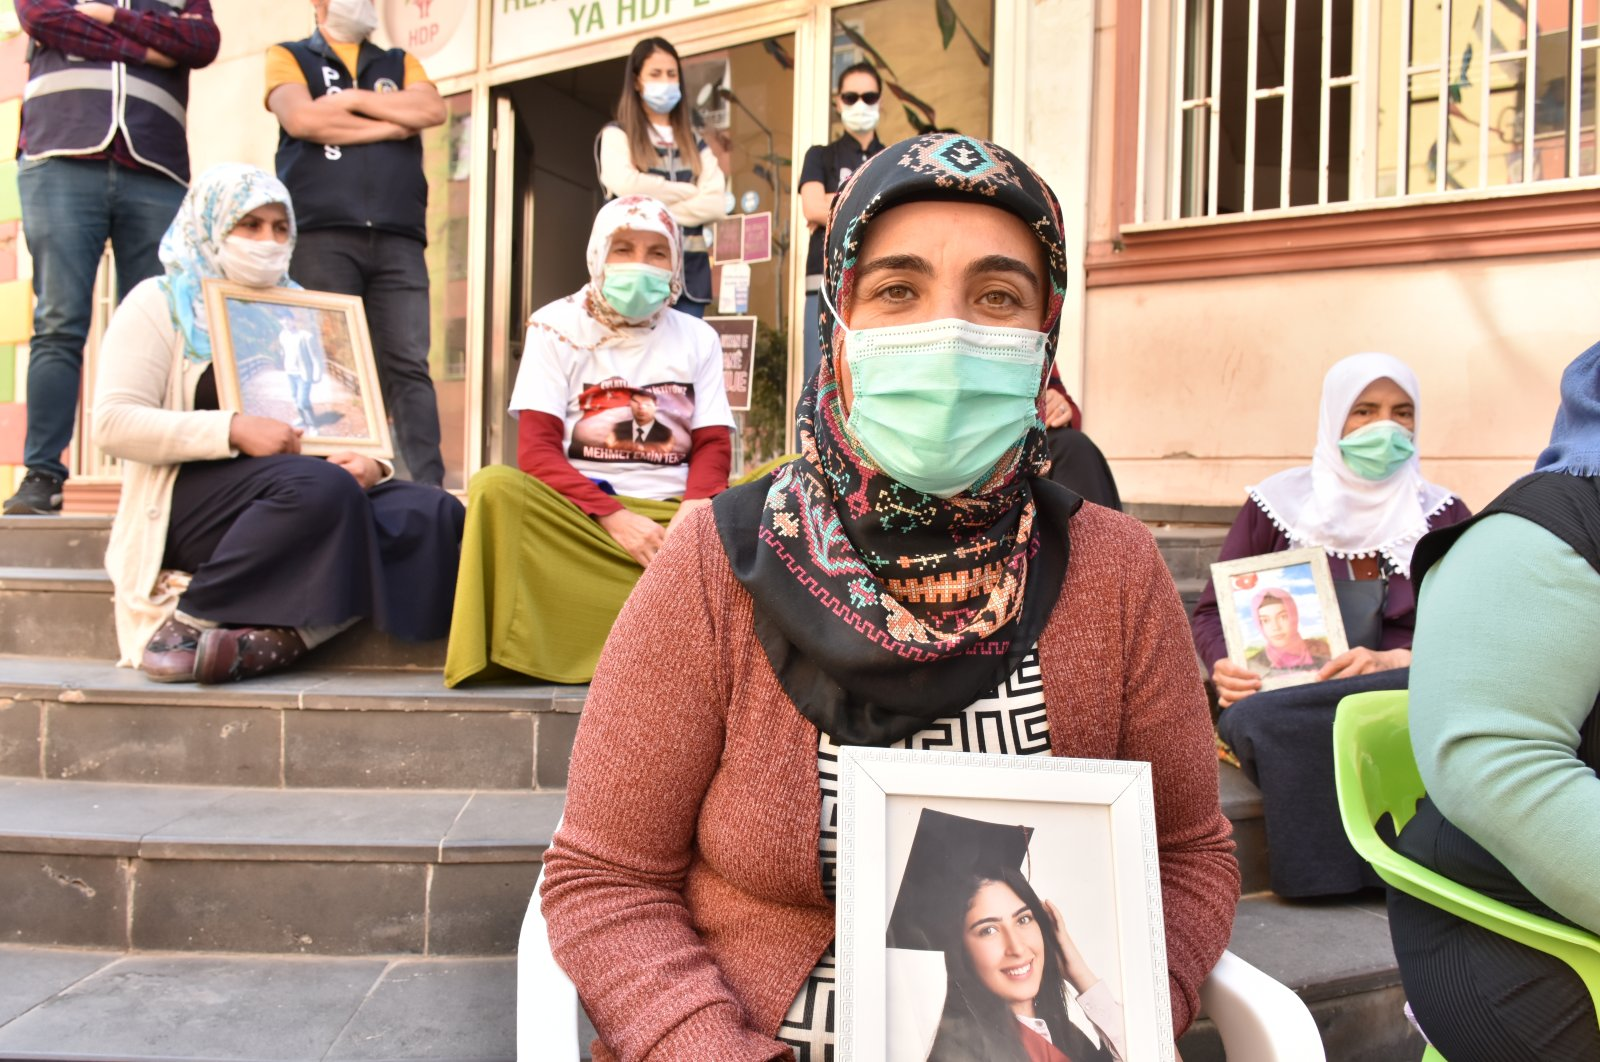 Türkan Mutlu holds onto her daughter Ceylan's picture during a sit-in protest in front of the HDP headquarters in Diyarbakır, Nov. 2, 2020. (AA)